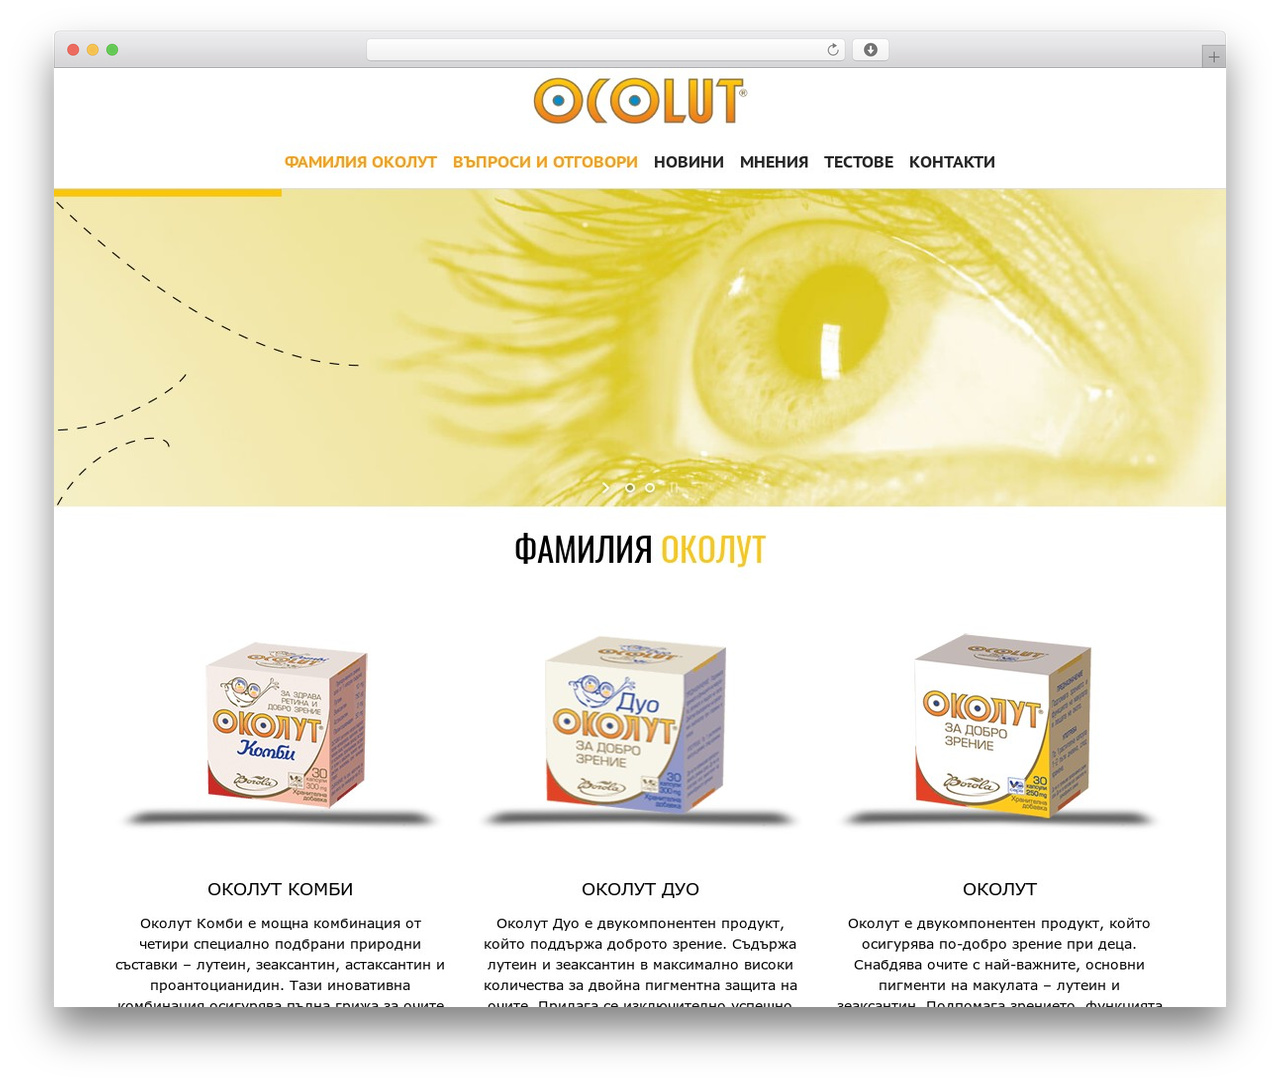 WordPress theme Subway - ocolut.com